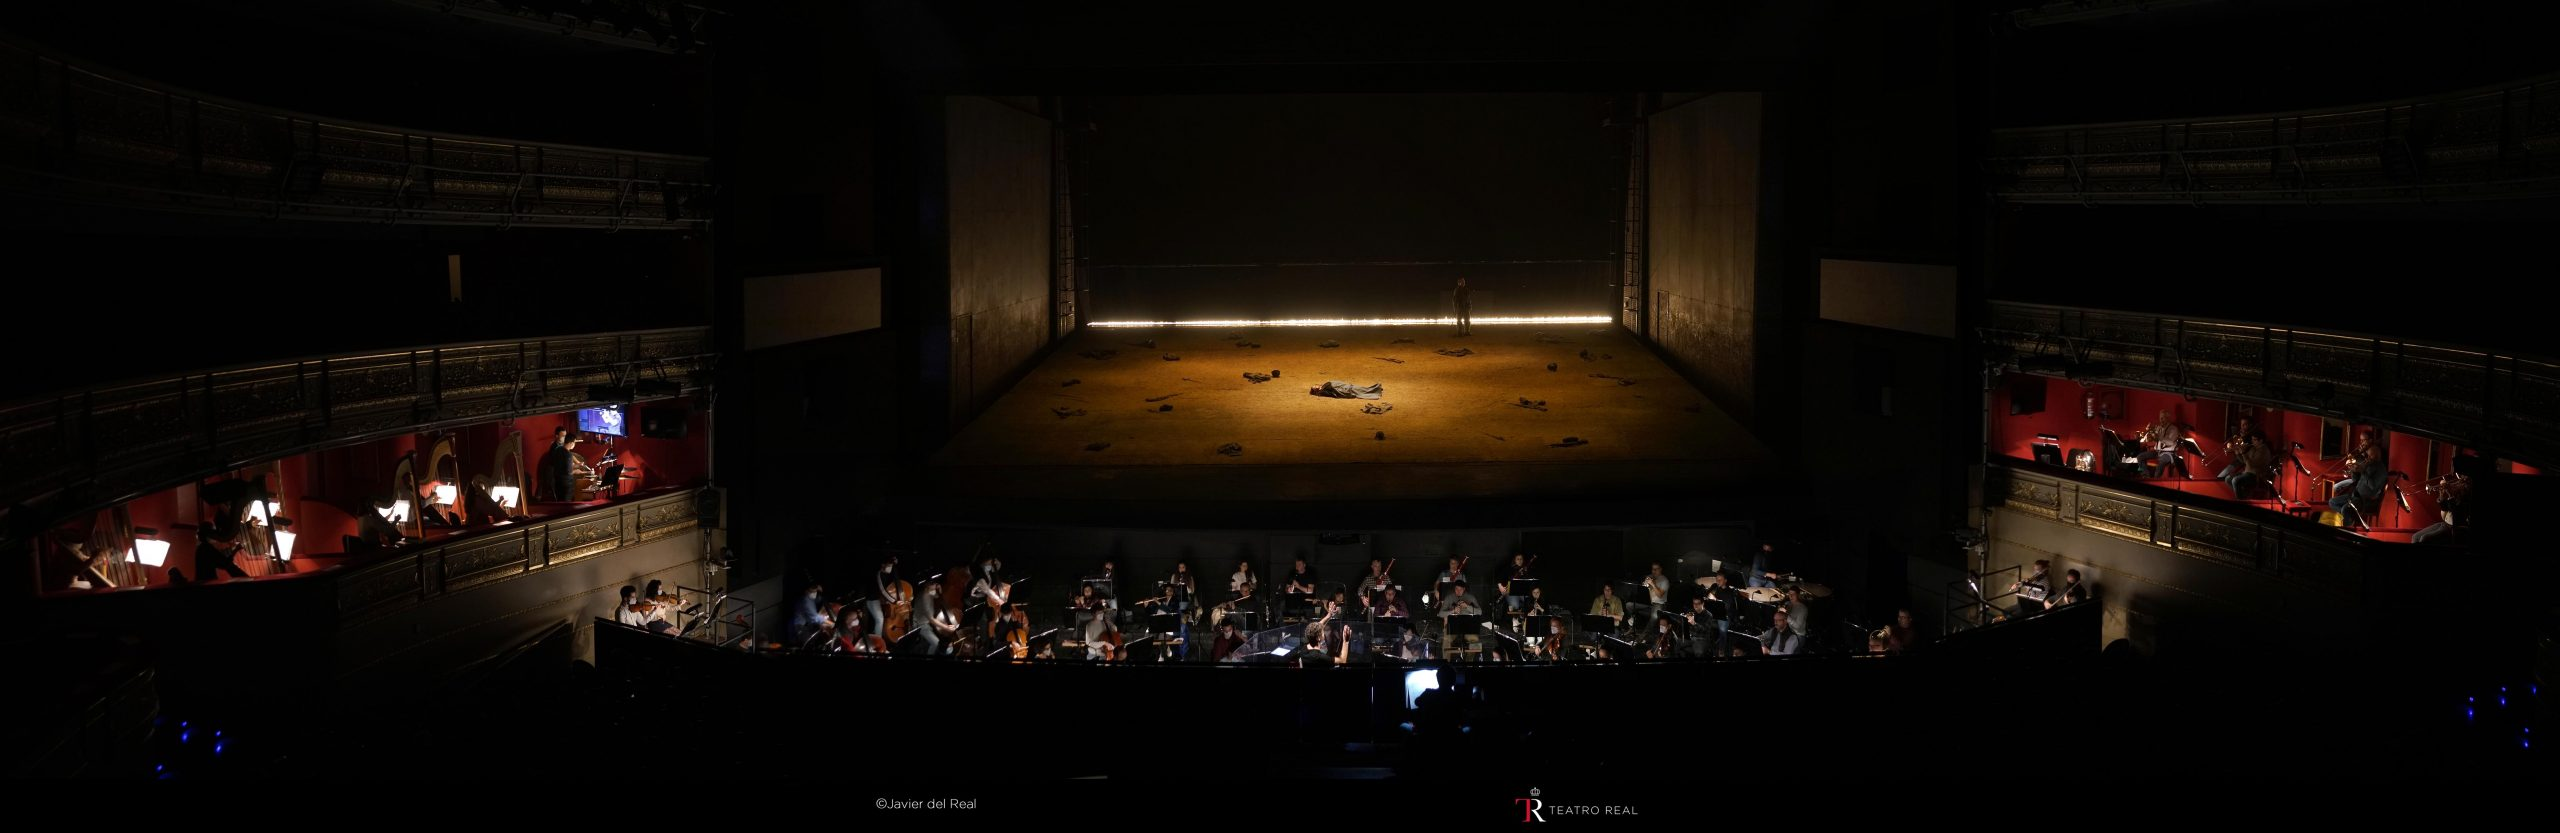 siegfried-teatro-real-plano-general